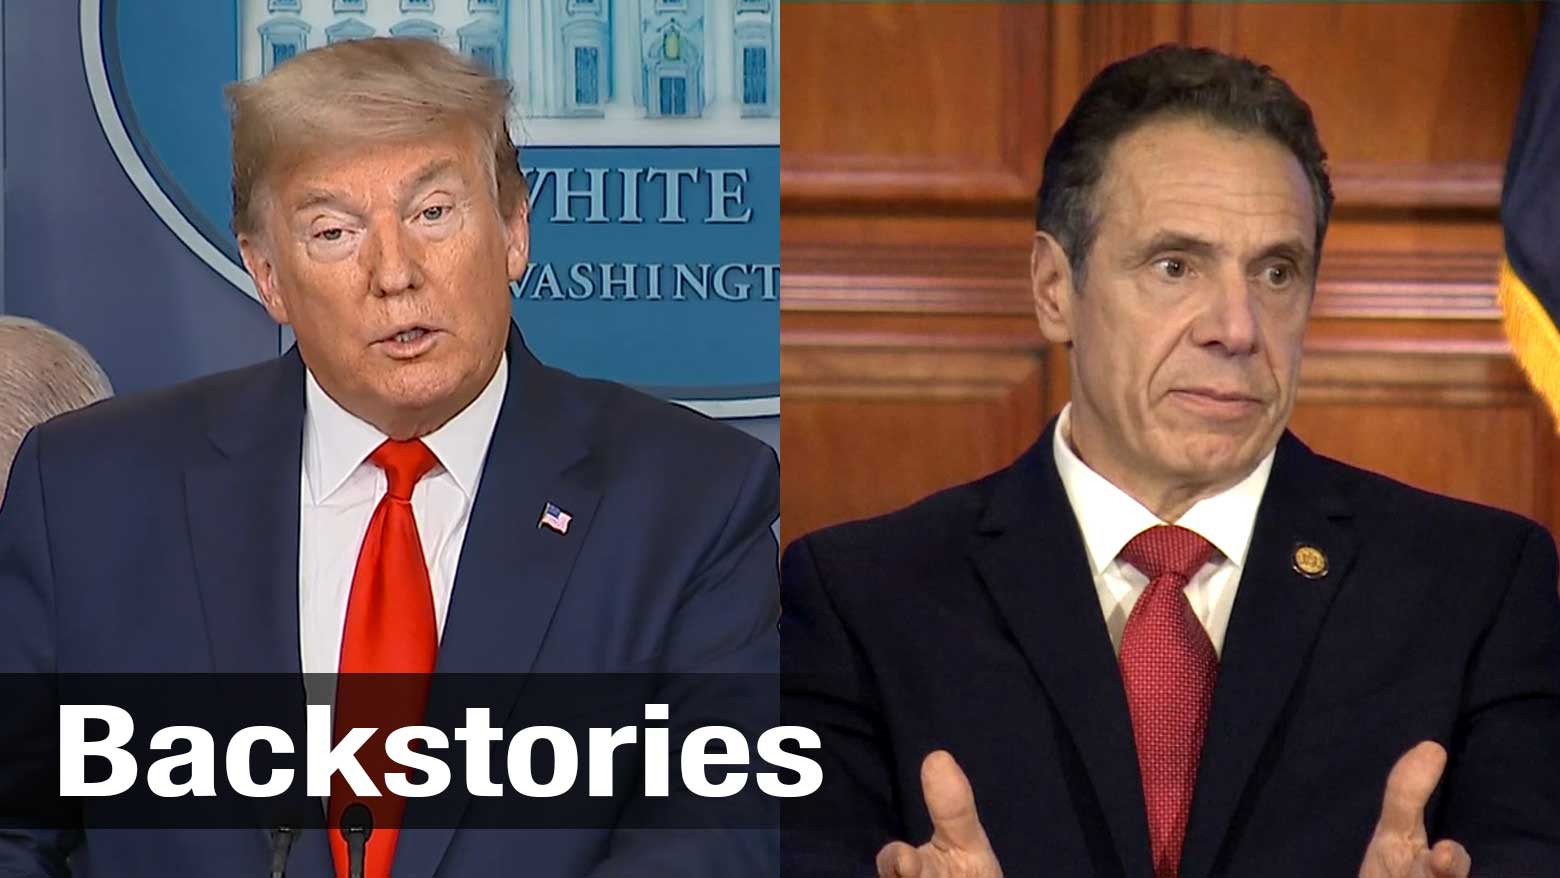 Trump and Cuomo display different ways to lead during coronavirus pandemic